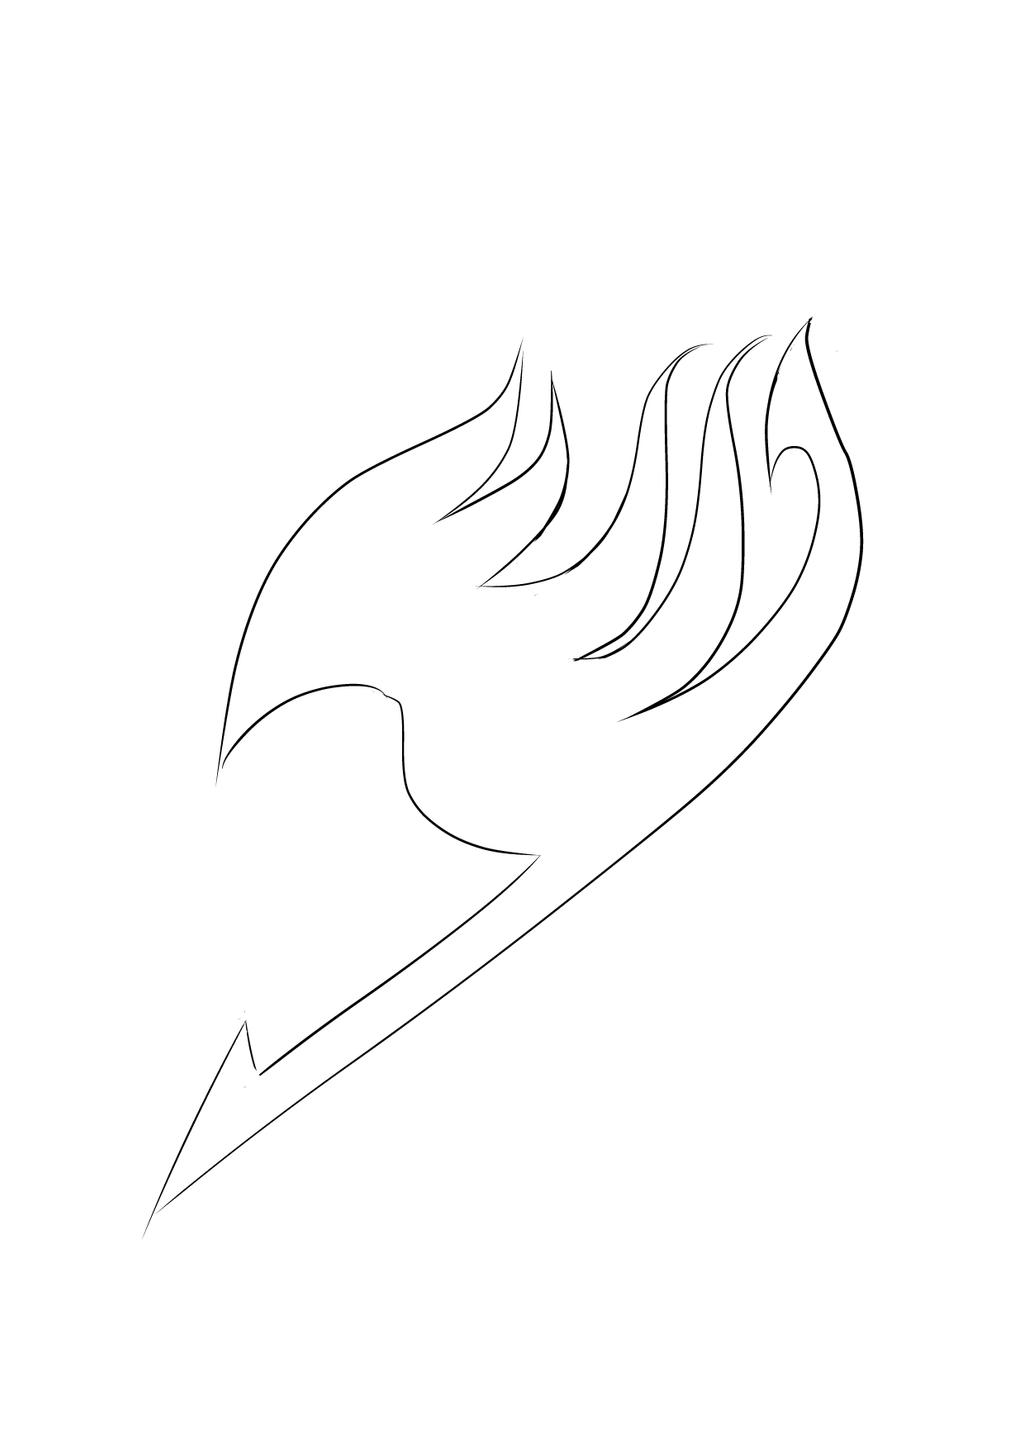 Fairy tail symbol by wheresxmyxcamera on deviantart fairy tail symbol by wheresxmyxcamera fairy tail symbol by wheresxmyxcamera biocorpaavc Image collections